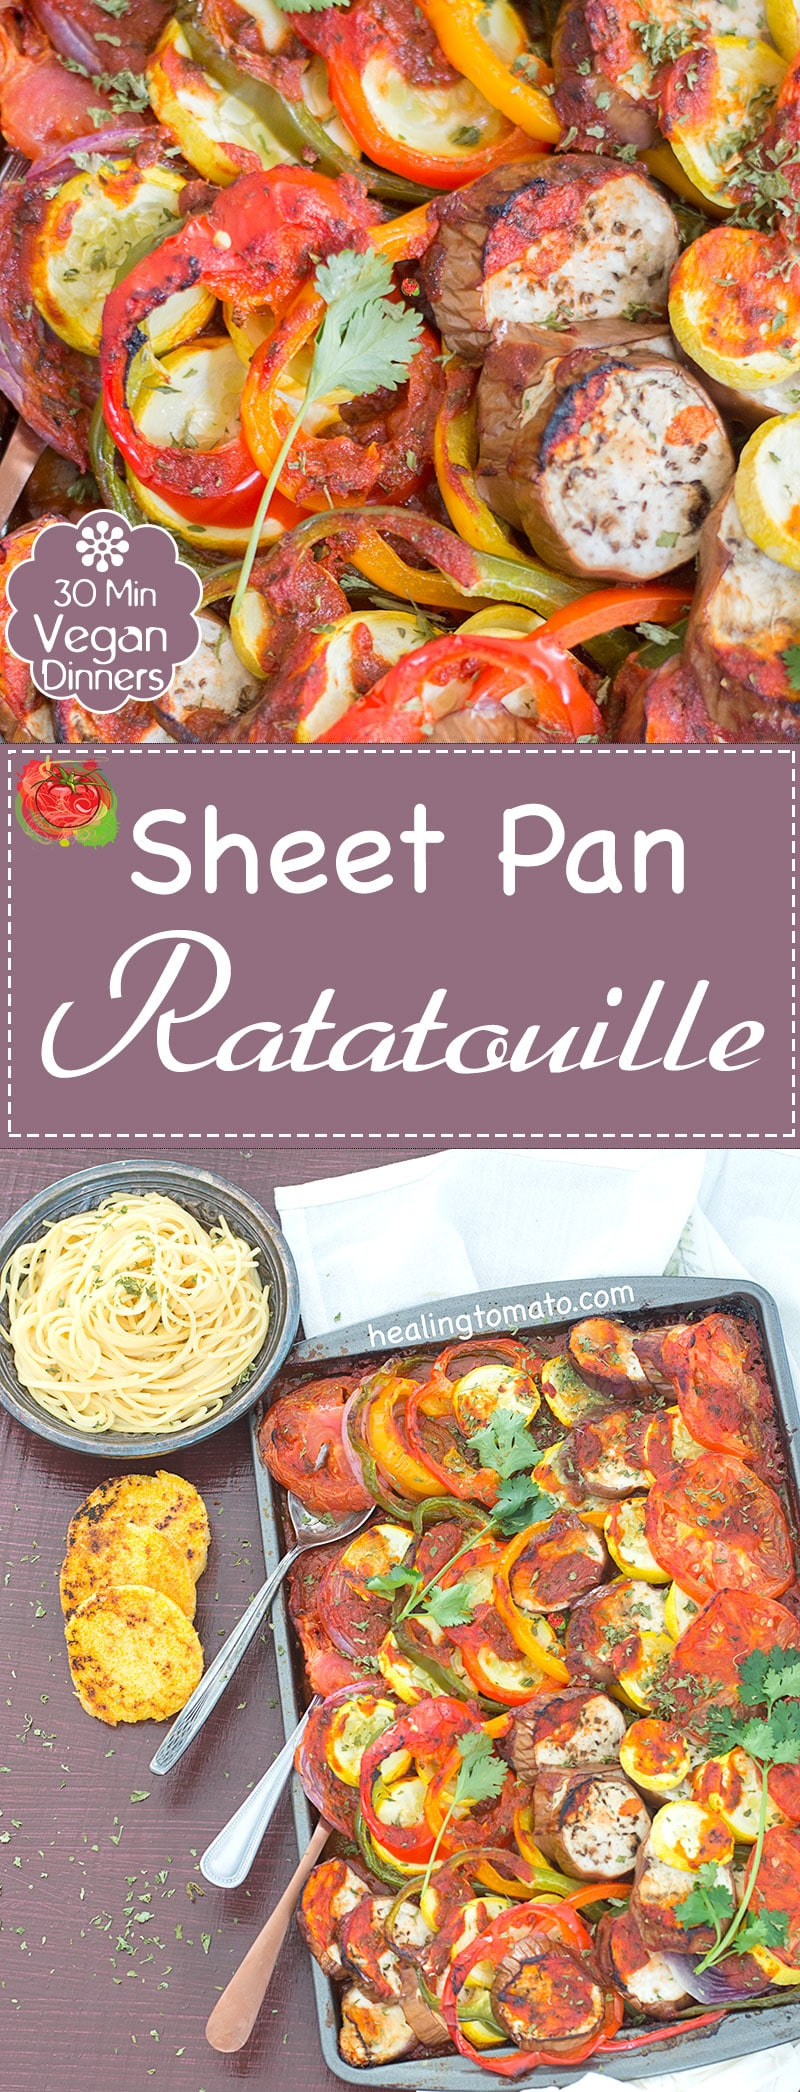 Quick Sheet Pan Ratatouille Dinner Recipe for the whole family to enjoy. Its a hearty and low calorie summer recipe made with garden fresh vegetables. Sheet pan recipes, family meals, ratatouille recipes, tomato recipes #sheetpan #recipes #familymeals #ratatouille #vegan #tomatorecipes https://www.healingtomato.com/sheet-pan-ratatouille/